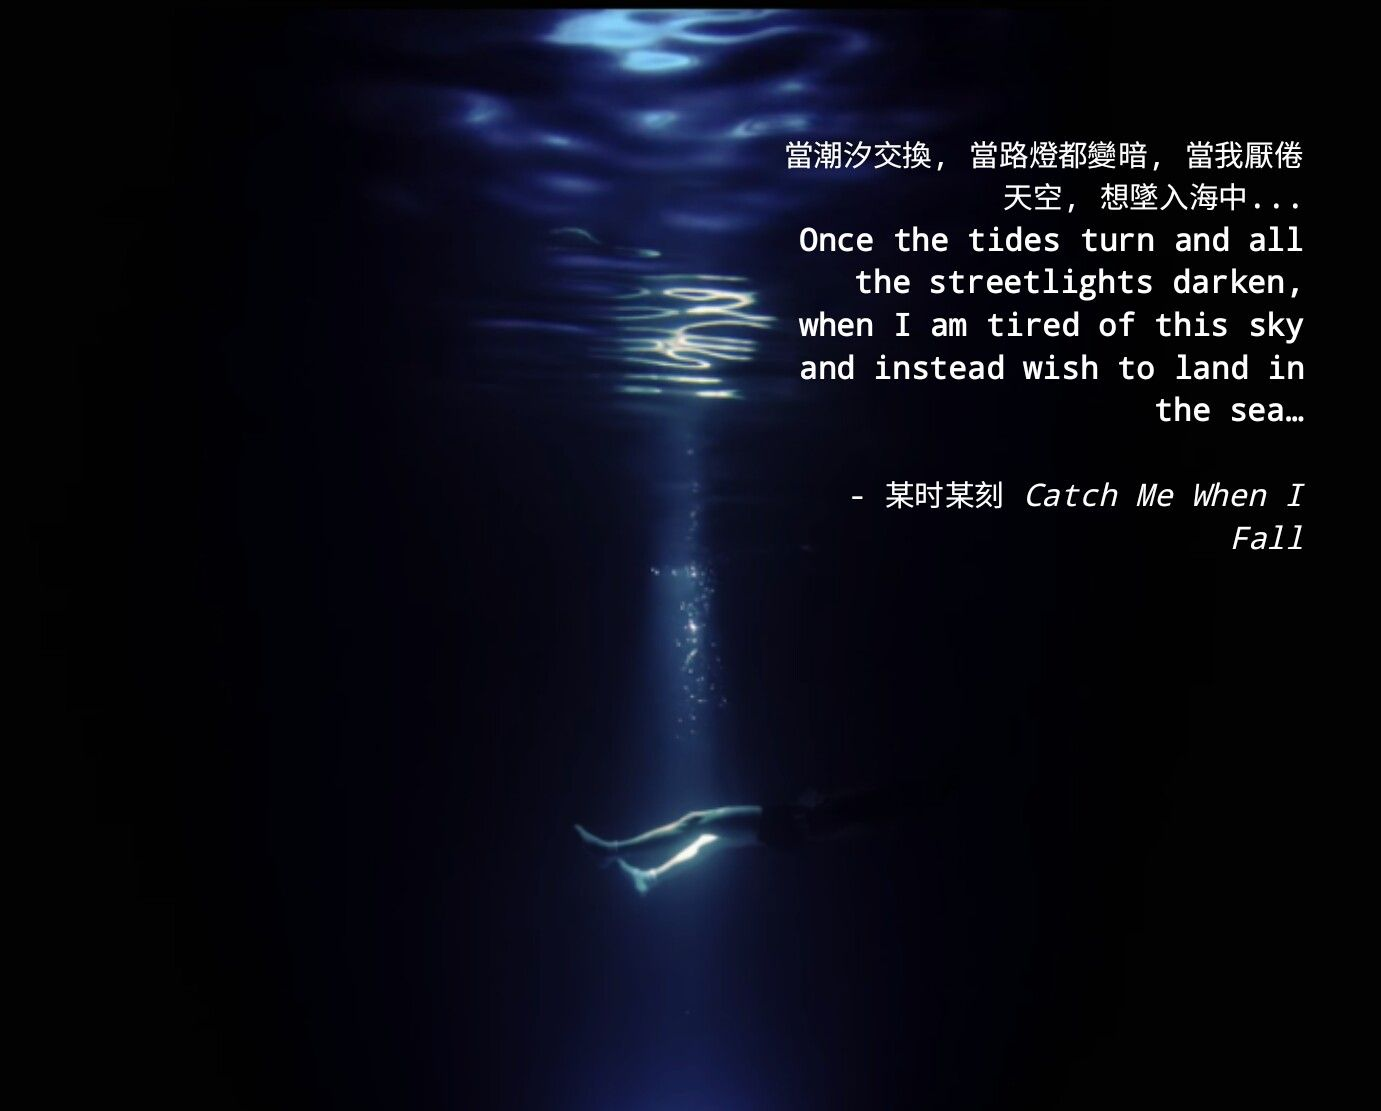 Quotes Luhan Catch Me When I Fall Quotes I Fall Emotions